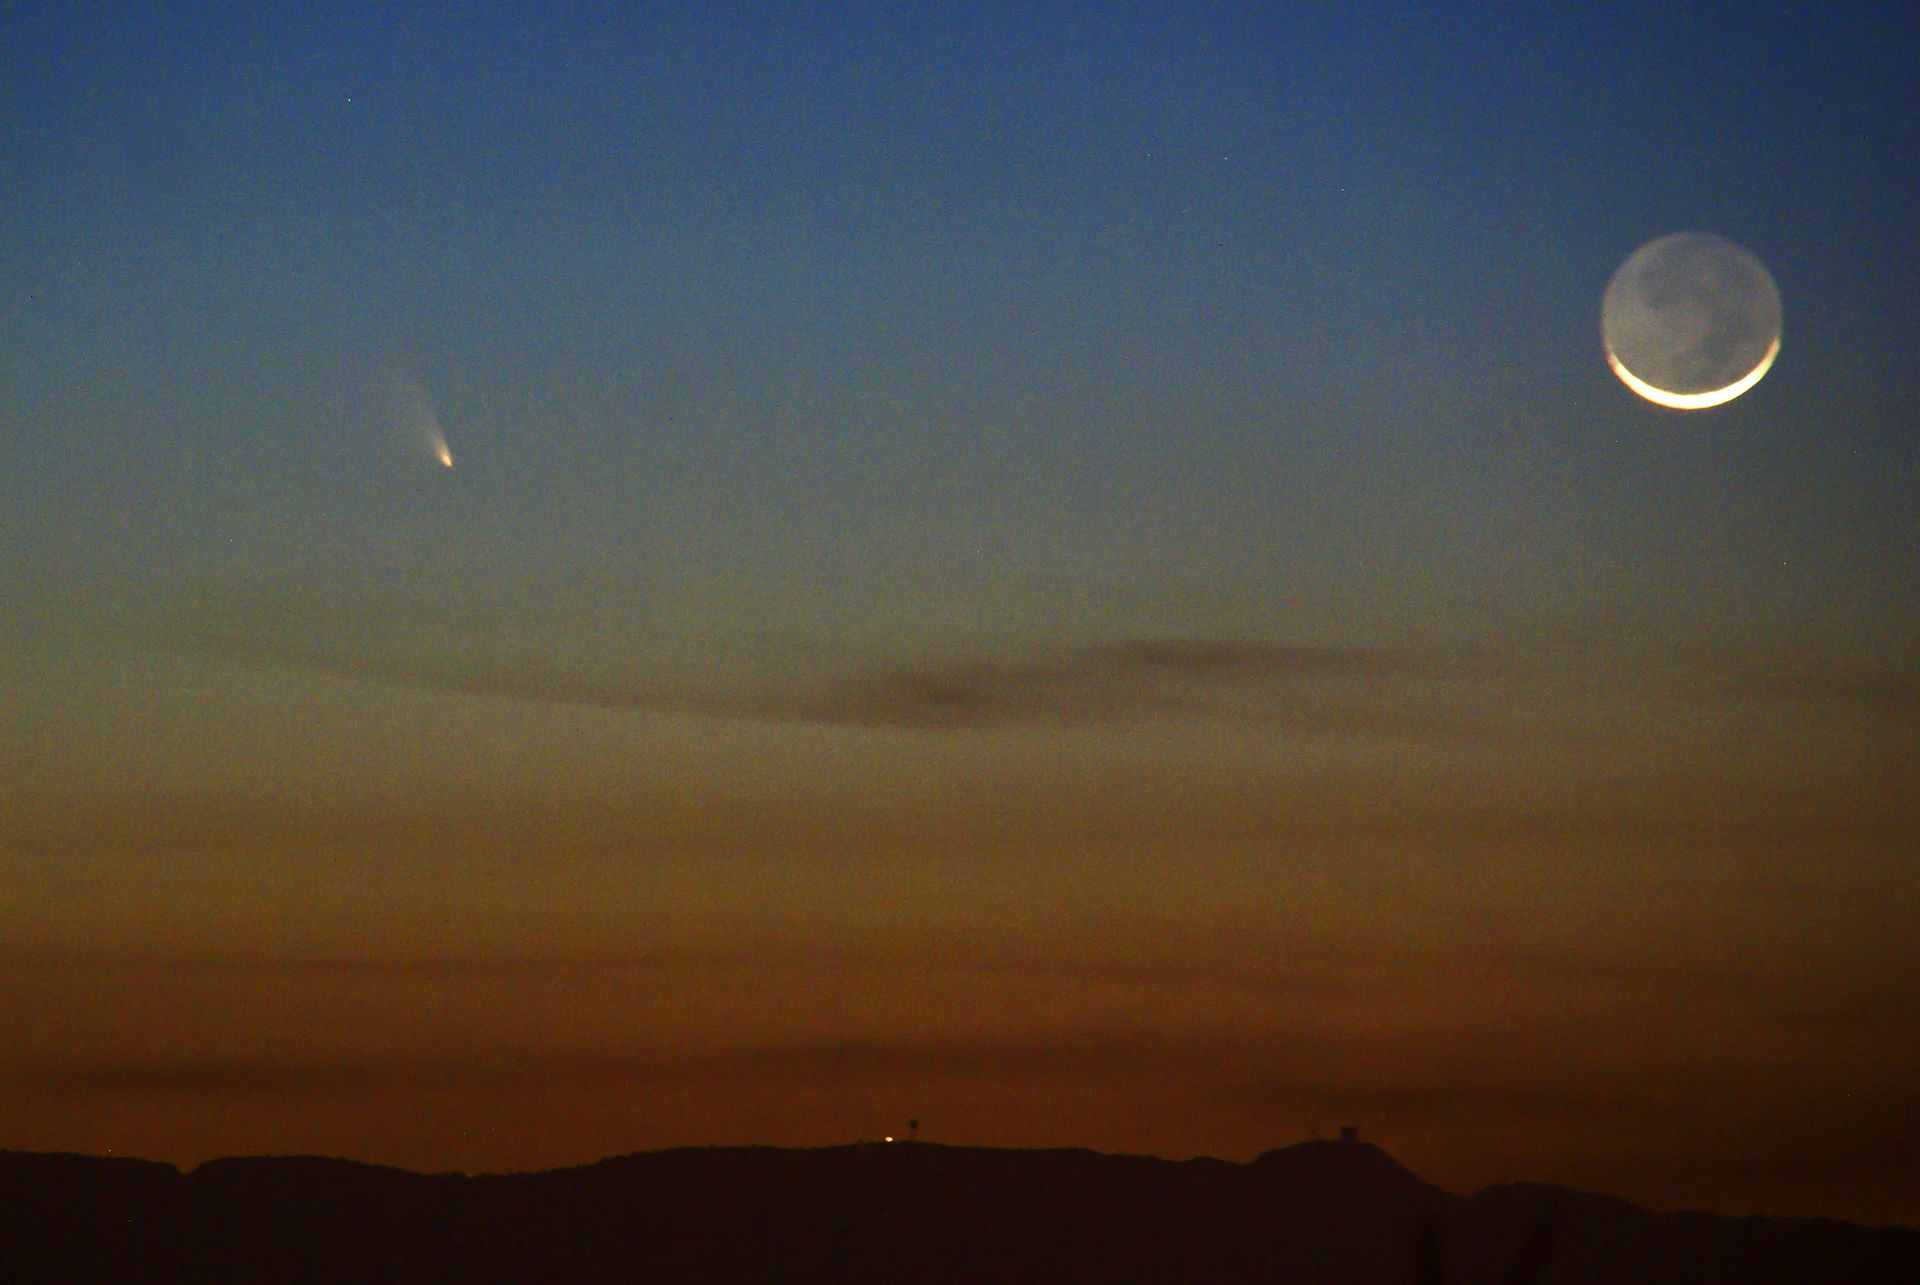 Comet PanSTARRS 3-12-13 at Orion Store